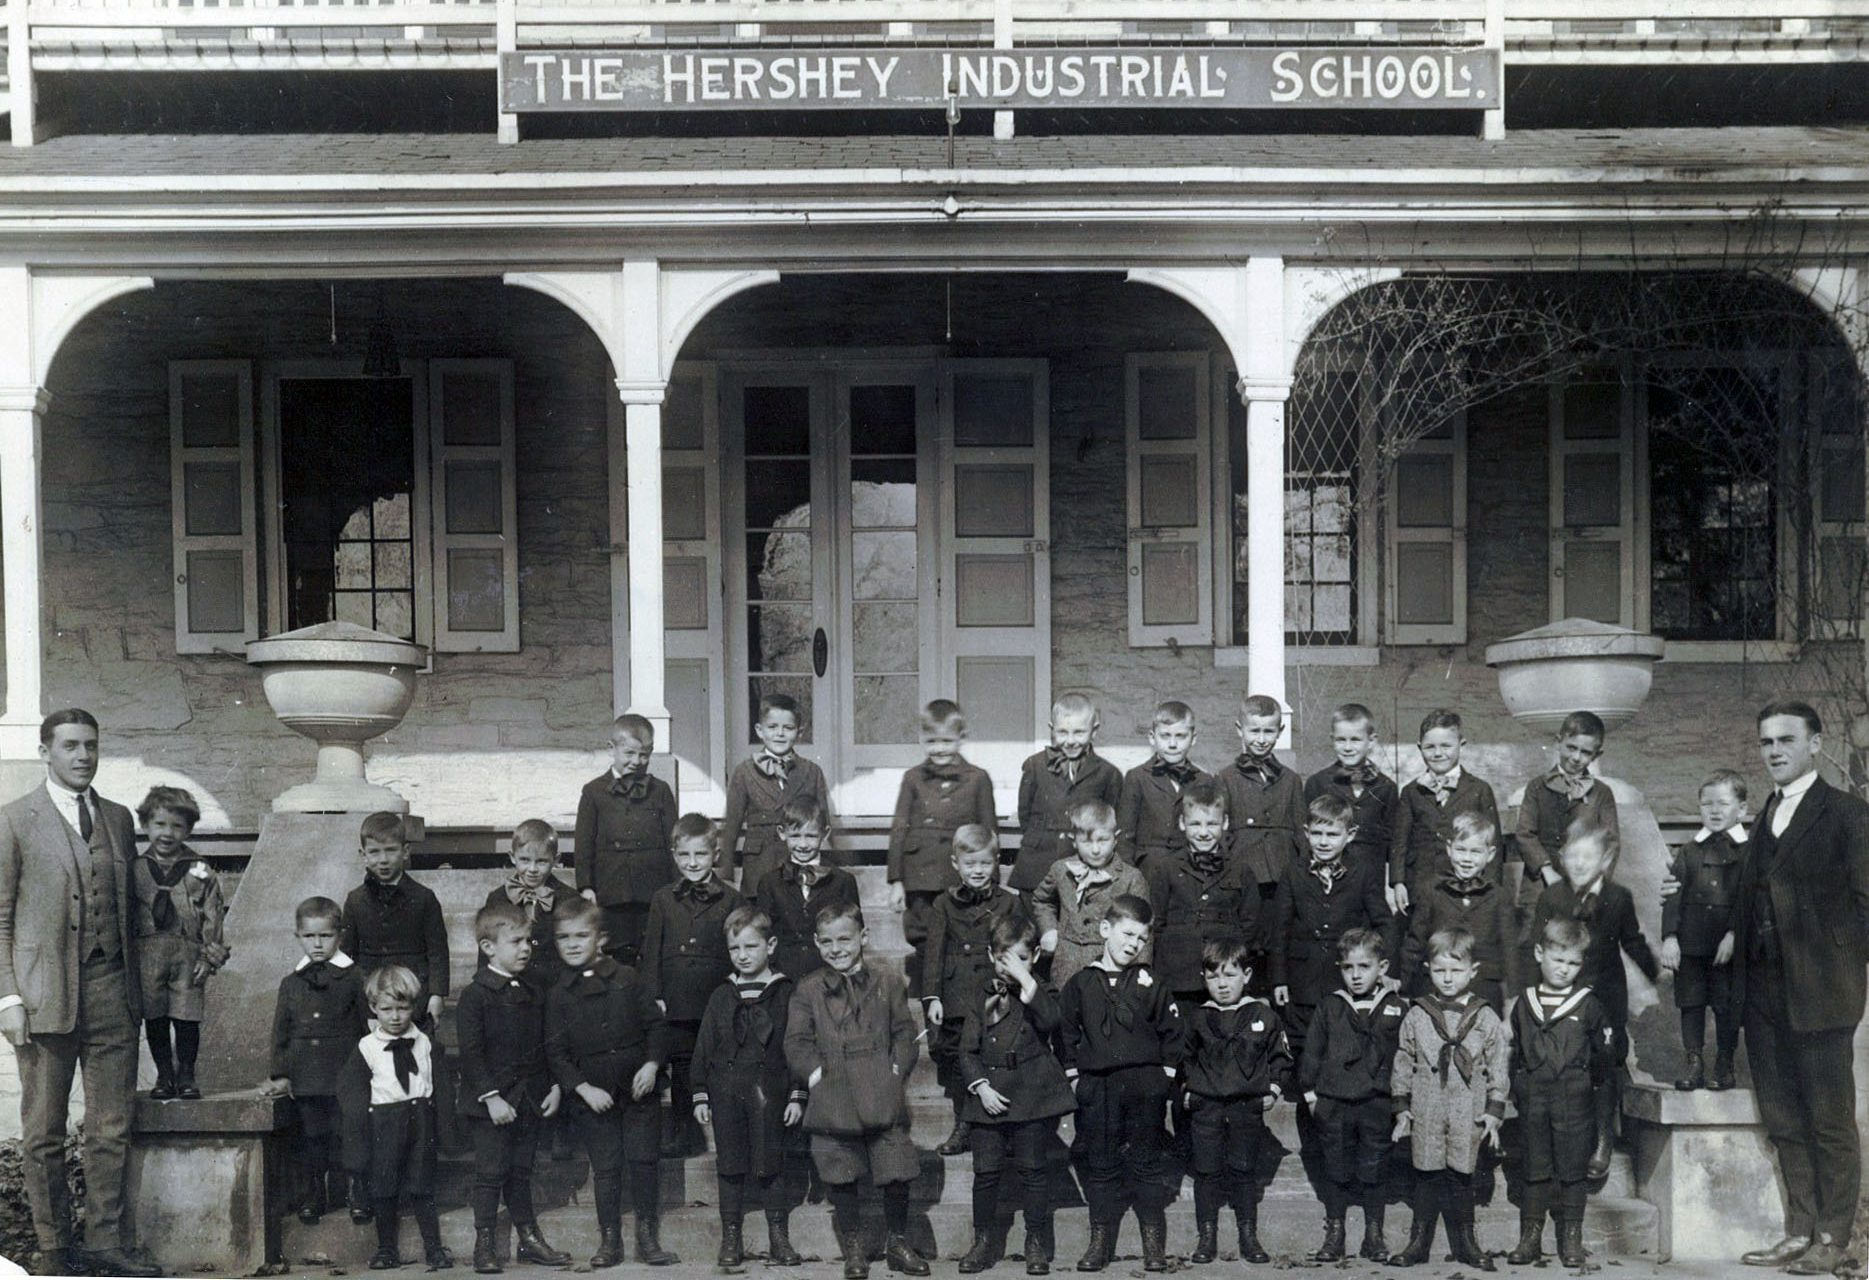 Hershey Industrial School in 1923